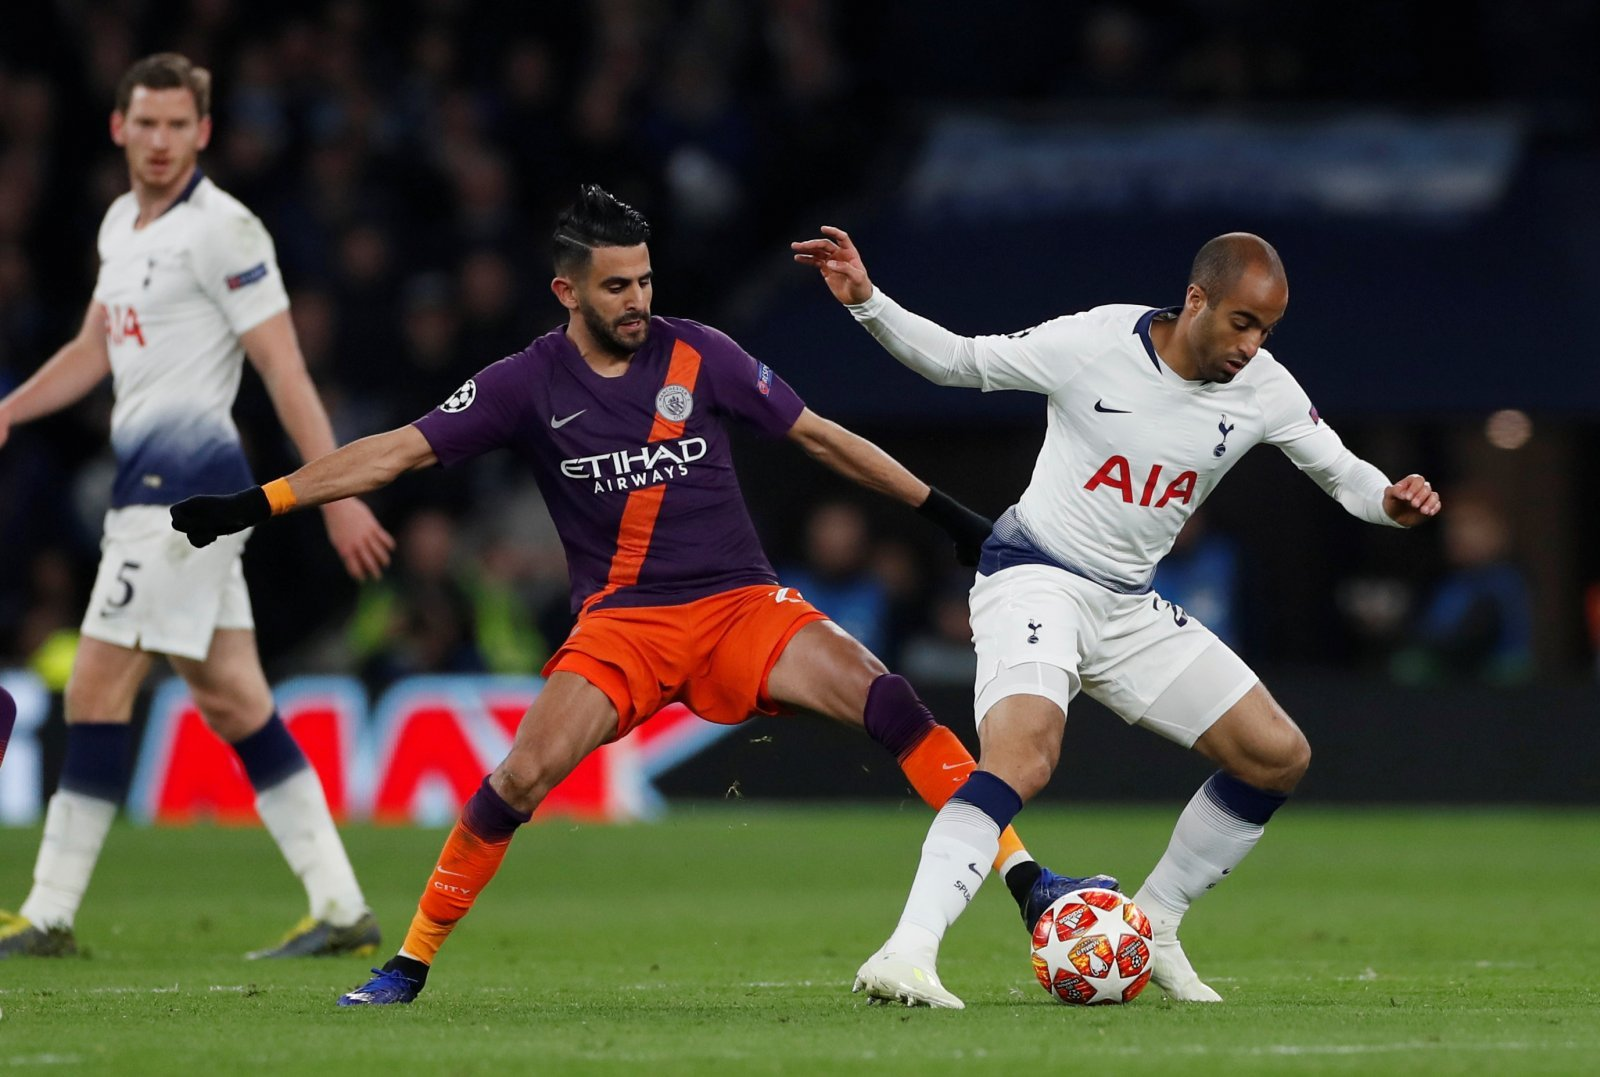 Martin Keown: Lucas Moura is a speed demon who can punish Manchester City on the break